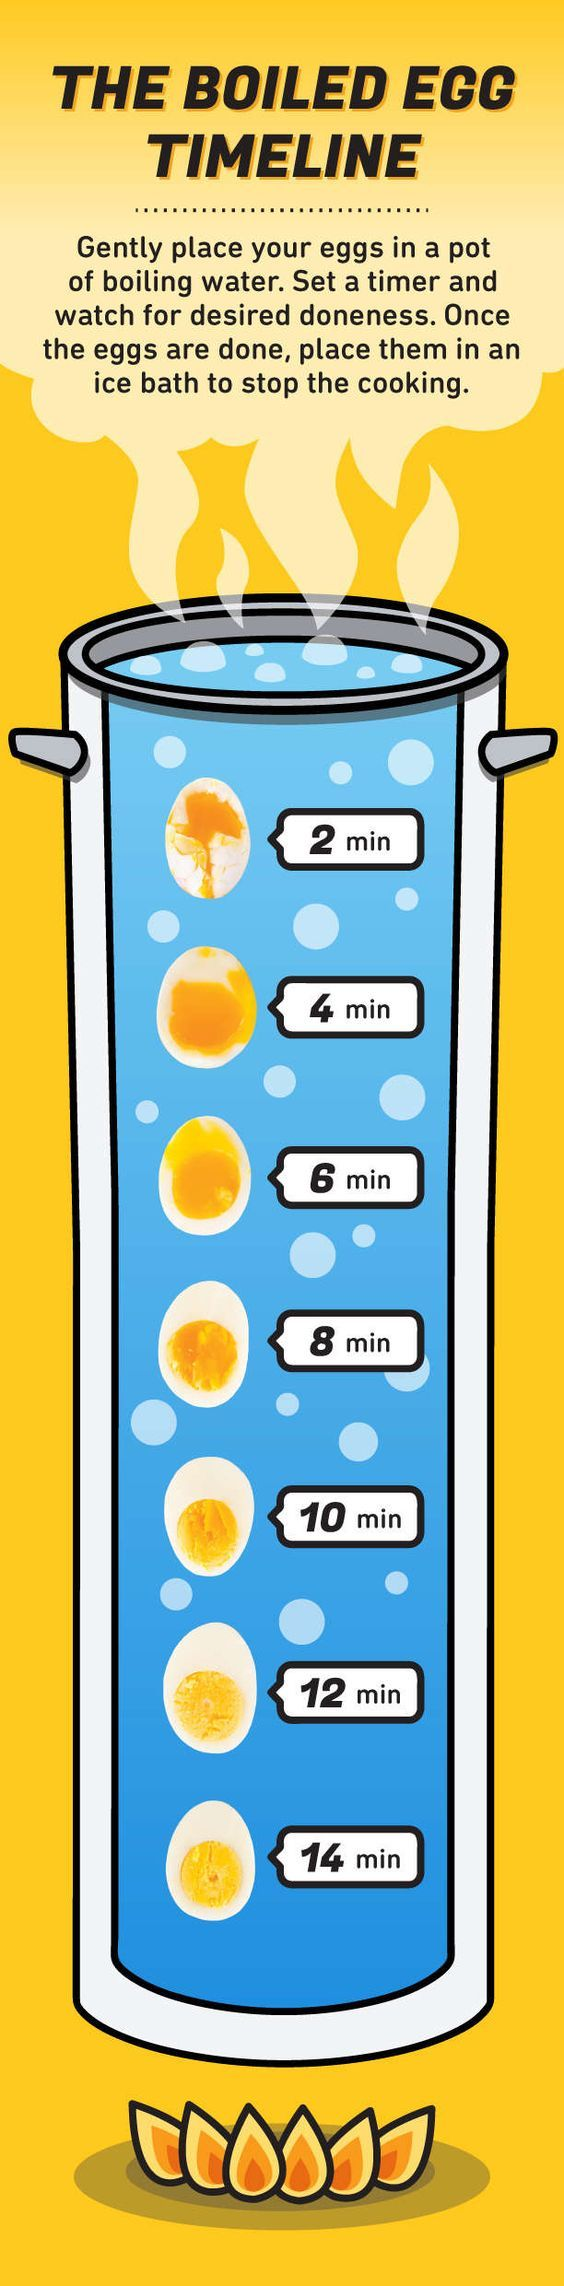 It's almost too easy to overcook soft-boiled eggs, medium-boiled eggs, and hard-boiled eggs. Seriously. The process seems simple enough as no special eq...